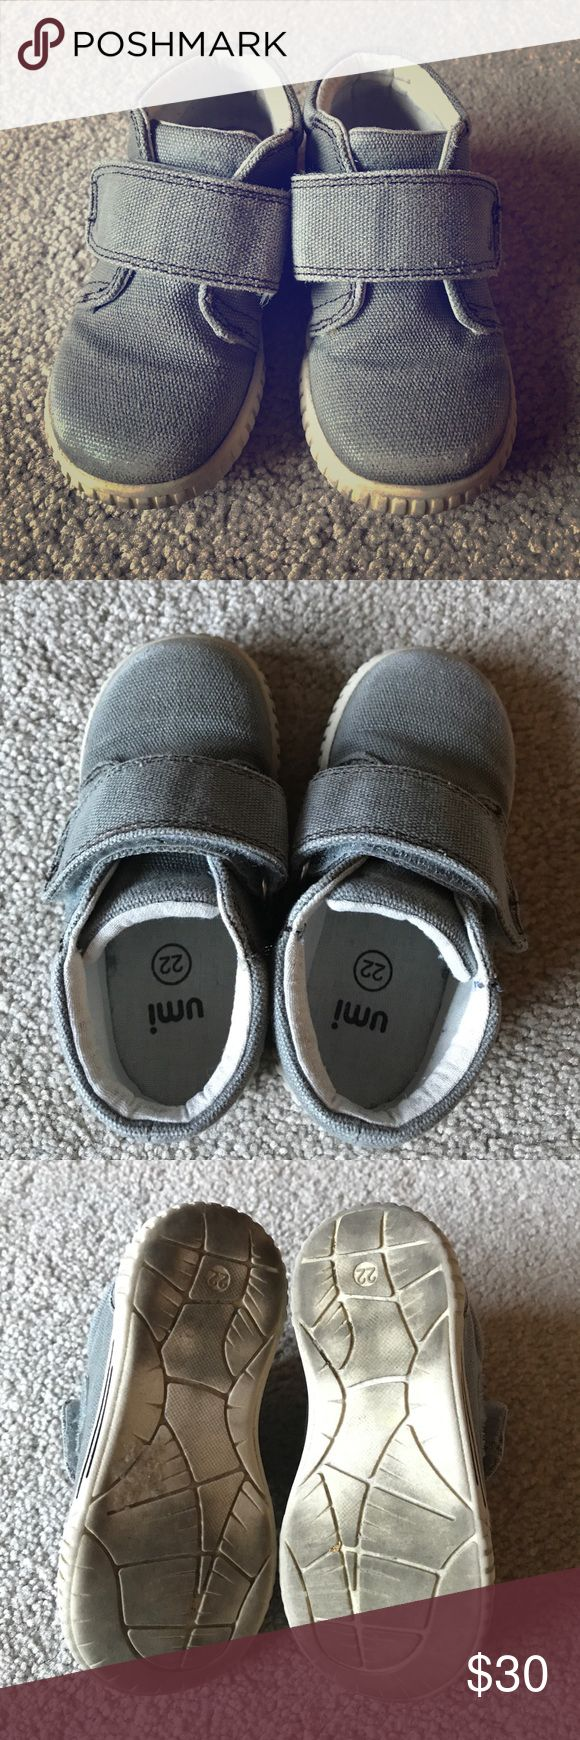 Umi Bodi D Boot Gently used Bodi D boot from Umi is one kids boot that is perfect for any occasion! It is durable for those play dates and dressy enough for a special event! Slight scuffing on the front but in good condition otherwise. EU 22/ US 6.5 Toddler. Umi Shoes Boots